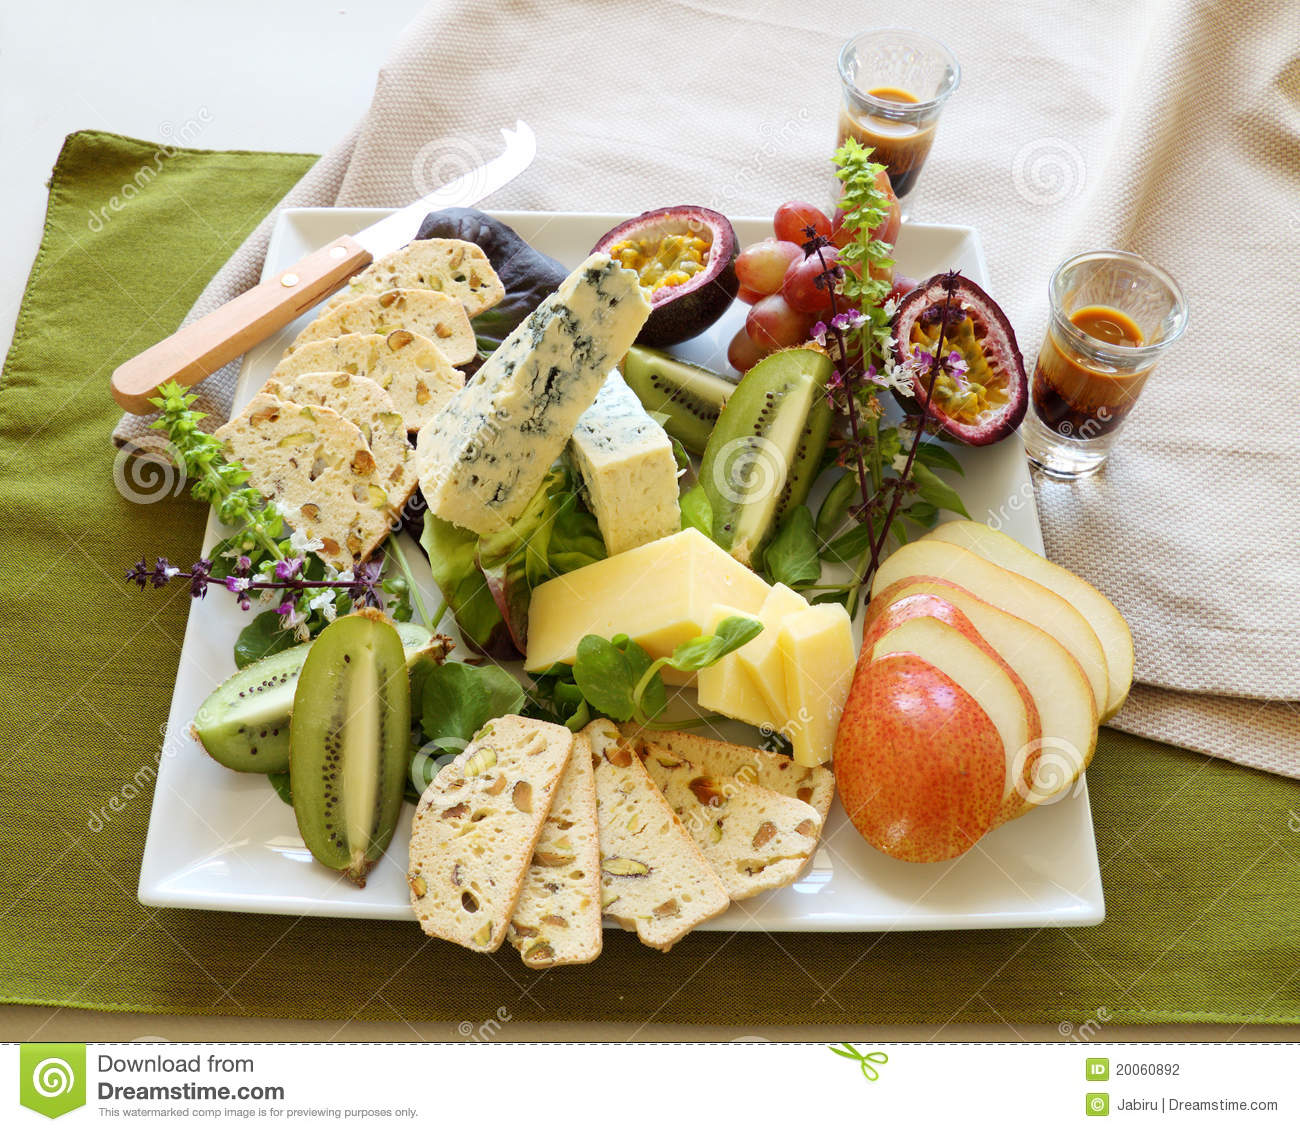 Delicious Fruit And Cheese Platter Featuring A Variety Of Different